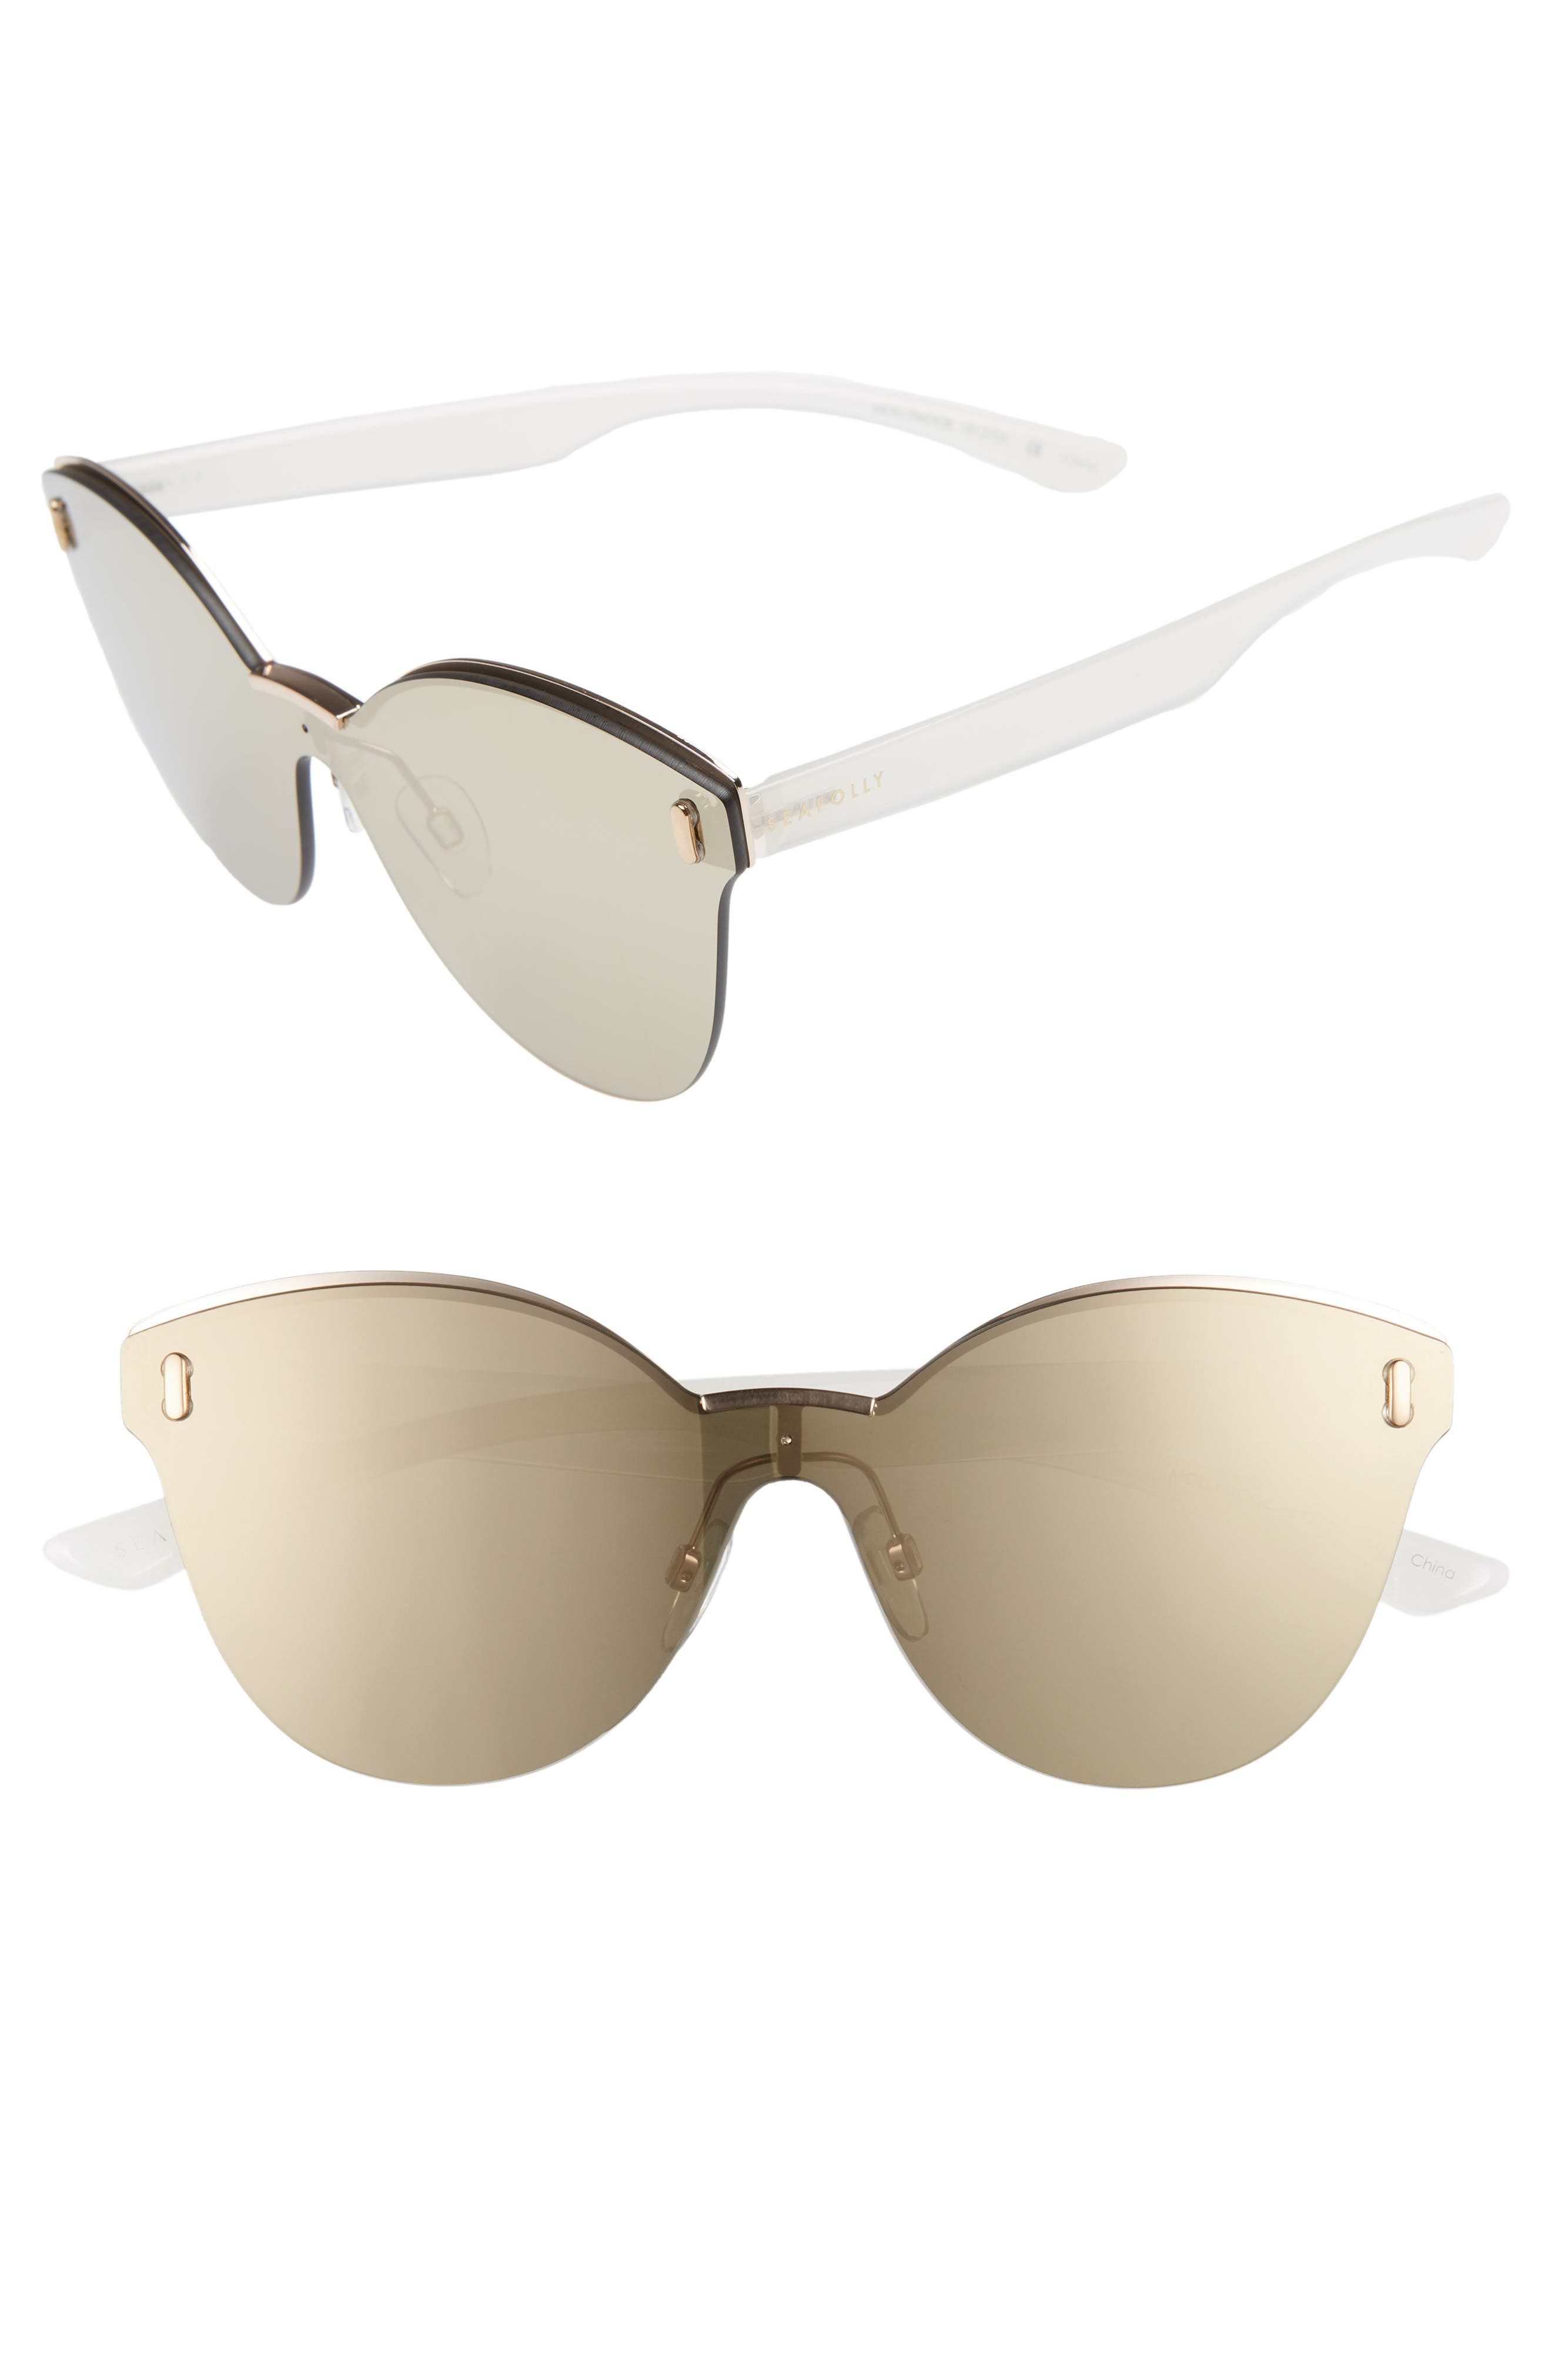 SEAFOLLY MOLLYMOCK 66MM CAT EYE SUNGLASSES - GOLD/ GOLD